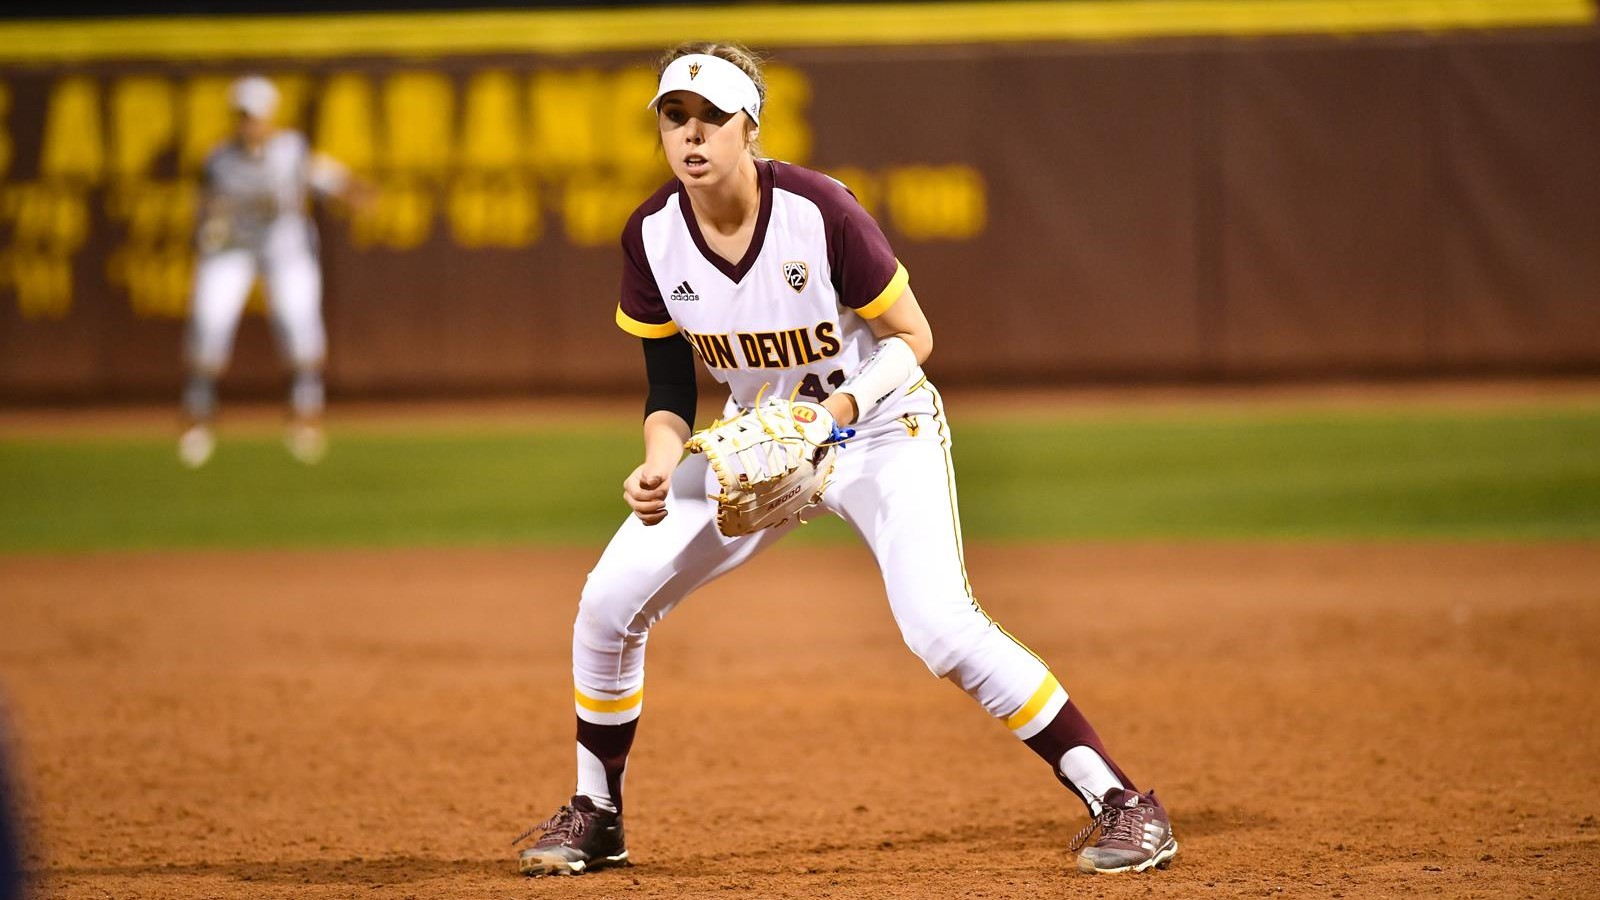 Danielle Gibson Wants Her Hitting Not Knee Issue To Define